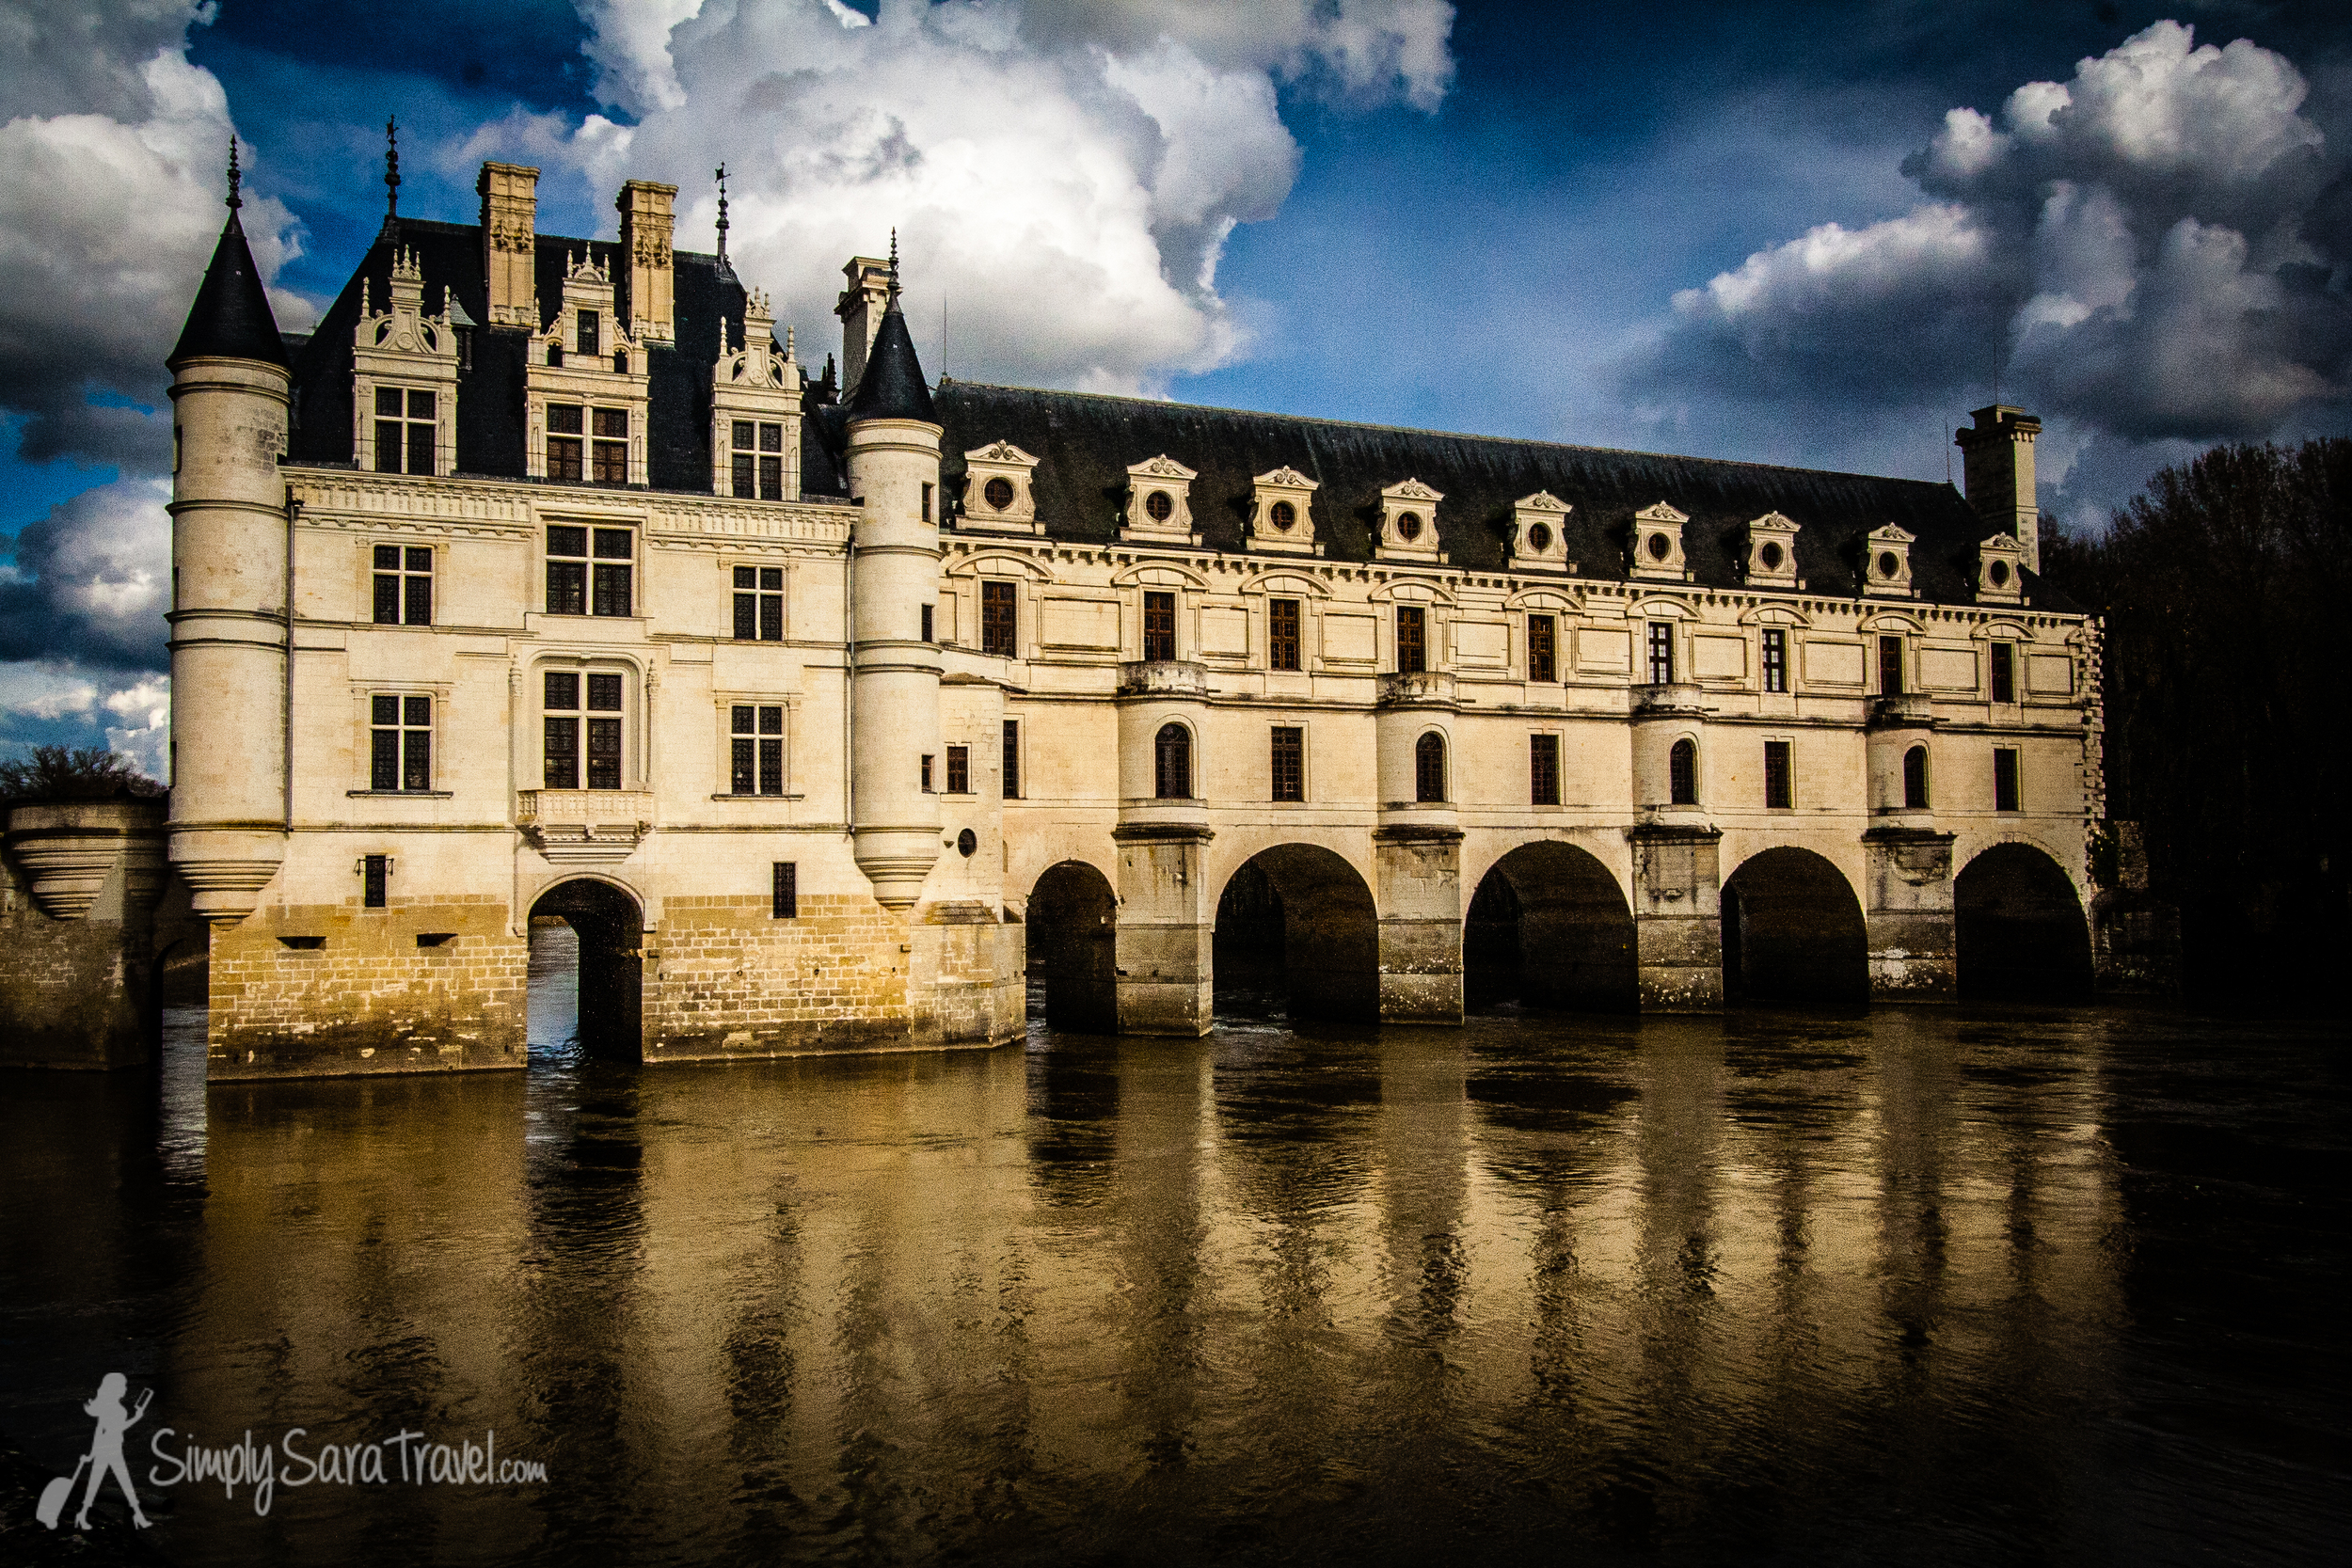 We stopped by Château de Chenonceau on the drive back from Bordeaux to Paris just long enough to capture a few pictures of the most beautiful château in the Loire in my opinion. (March 2013)